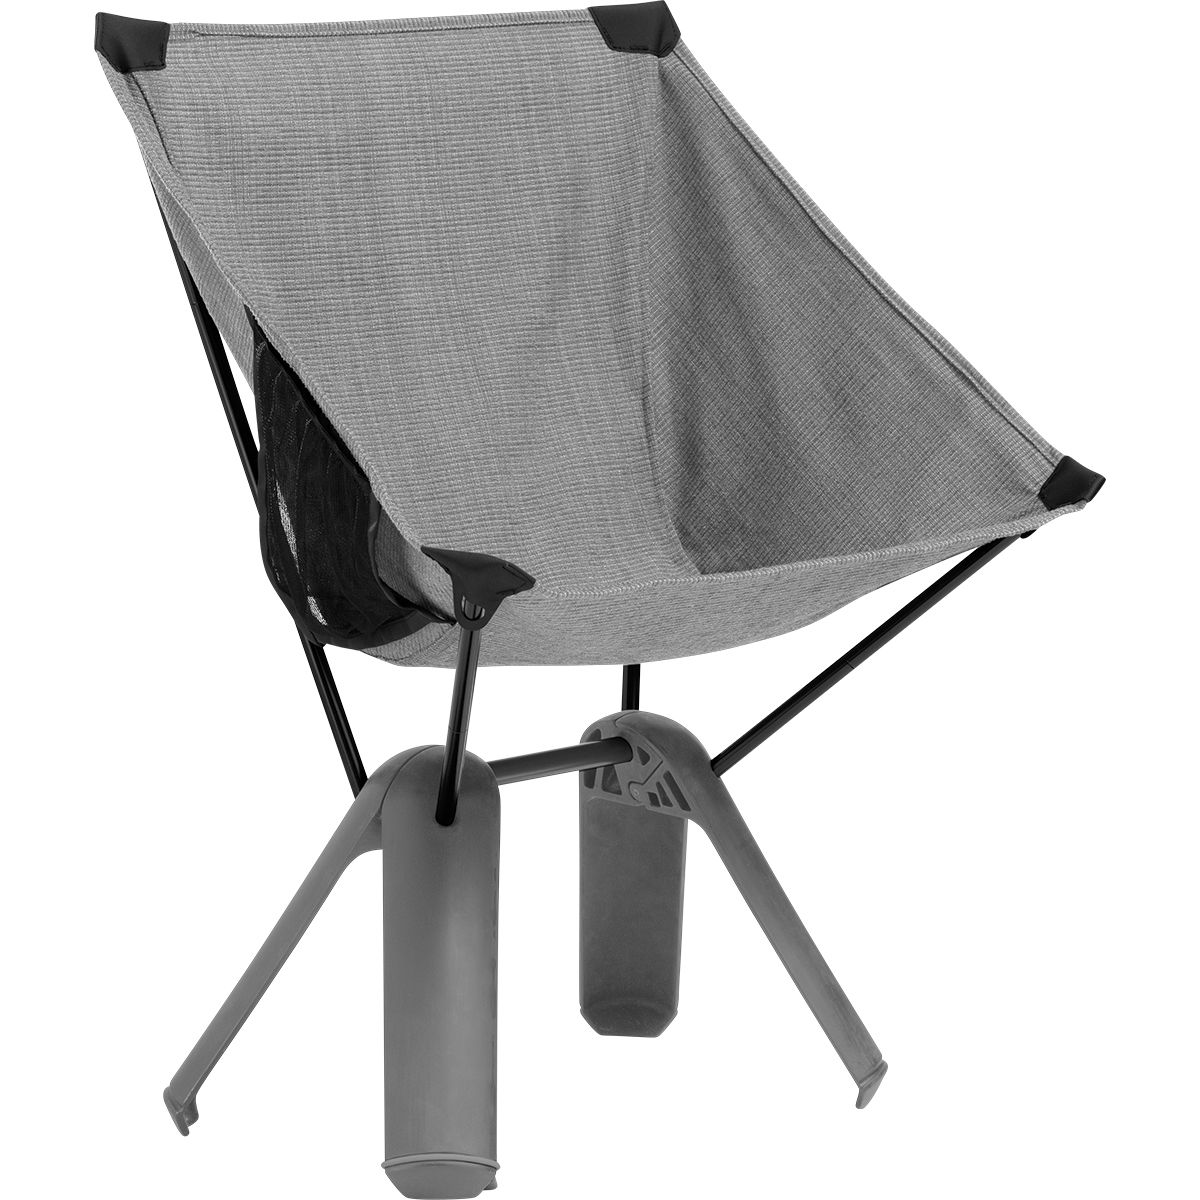 Therm-A-Rest Quadra Chair Faltstuhl